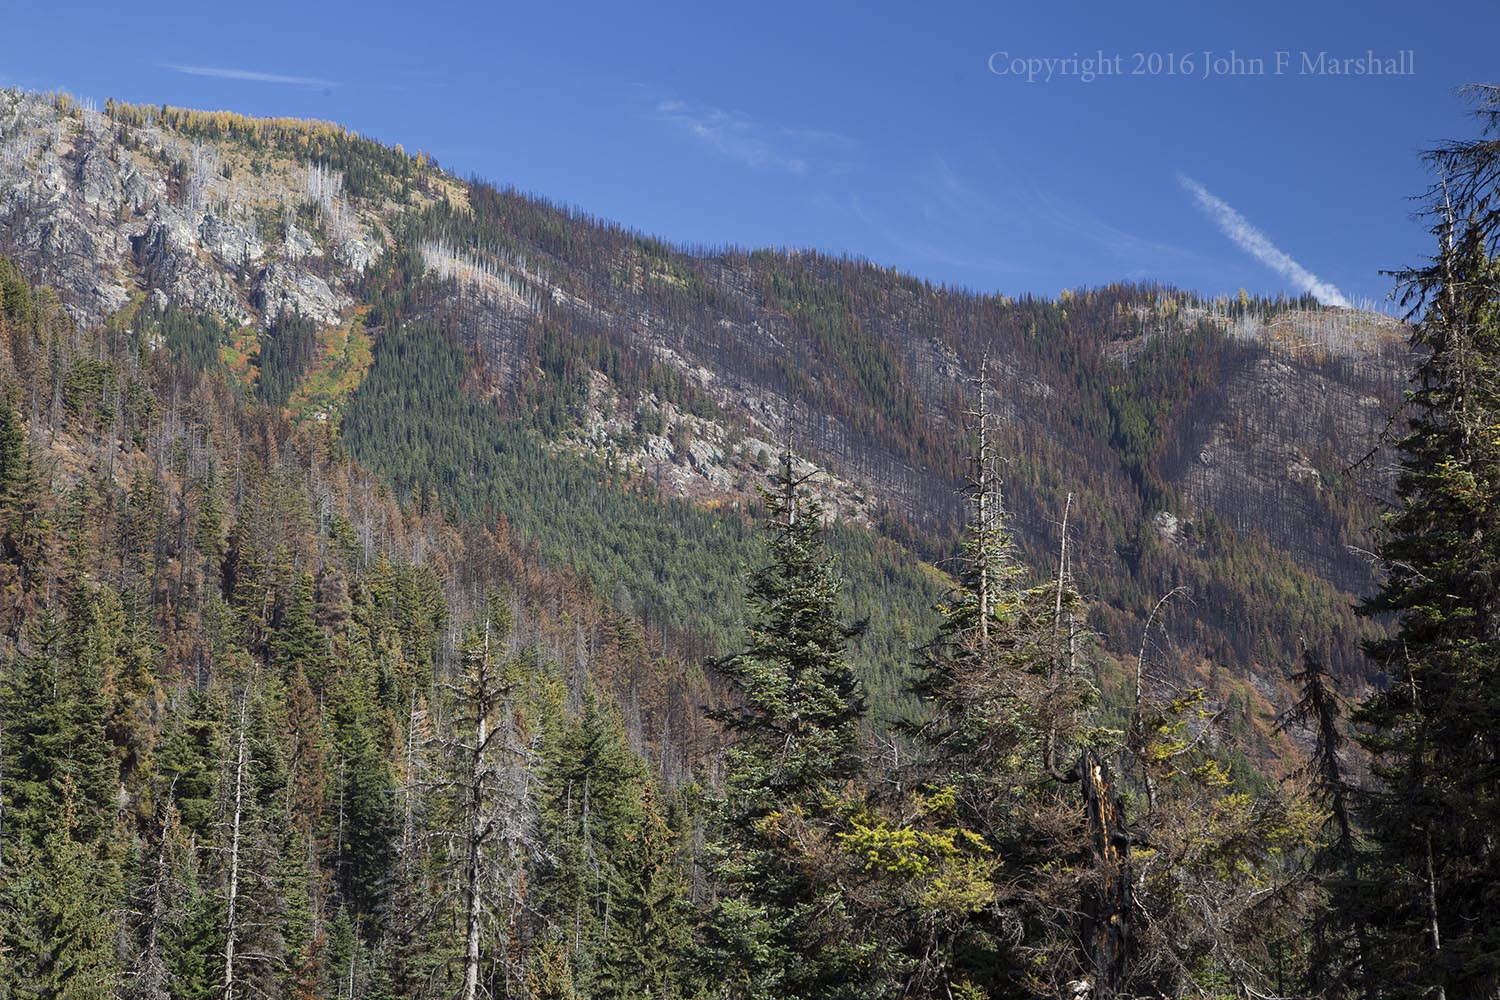 Fire and avalanche have both left their mark on Phelps Ridge.